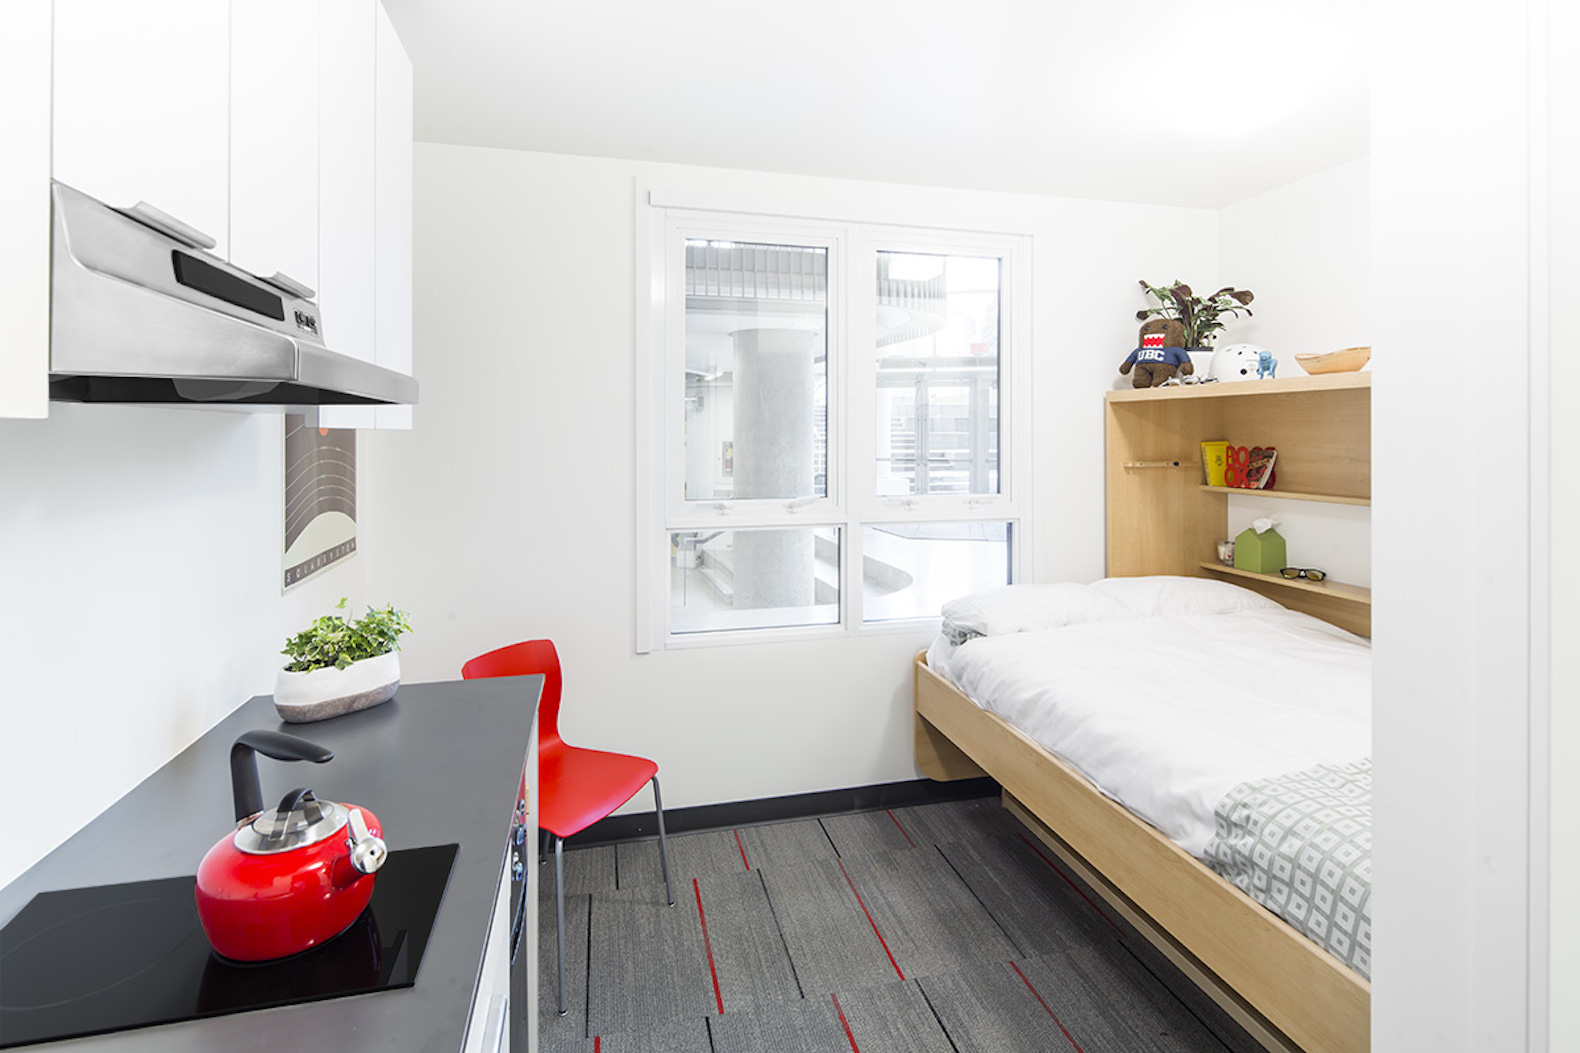 Appartement étudiant Tours Ubcs Nano Studios To Offer Affordable Micro Apartments